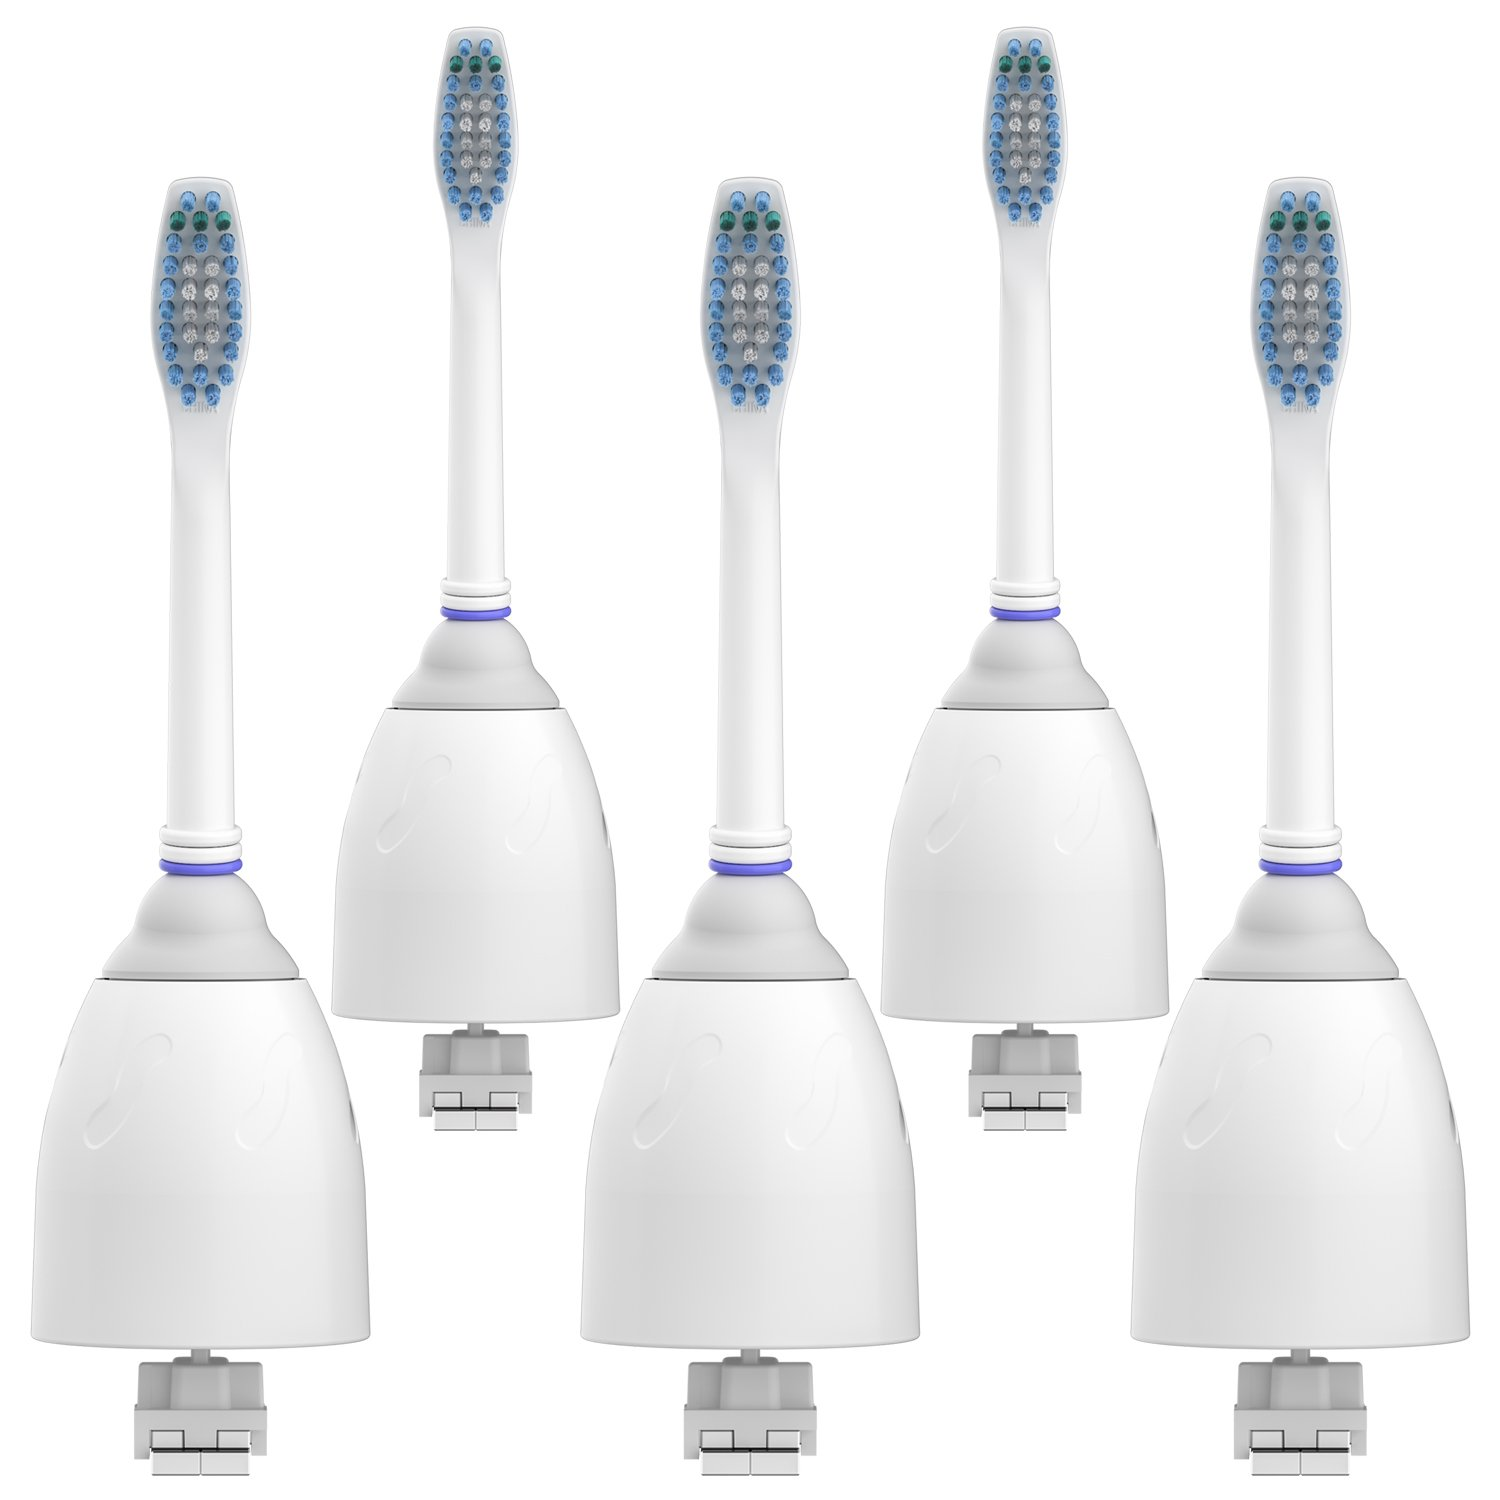 Equate SmileSonic Replacement Toothbrush Heads, 5 Count